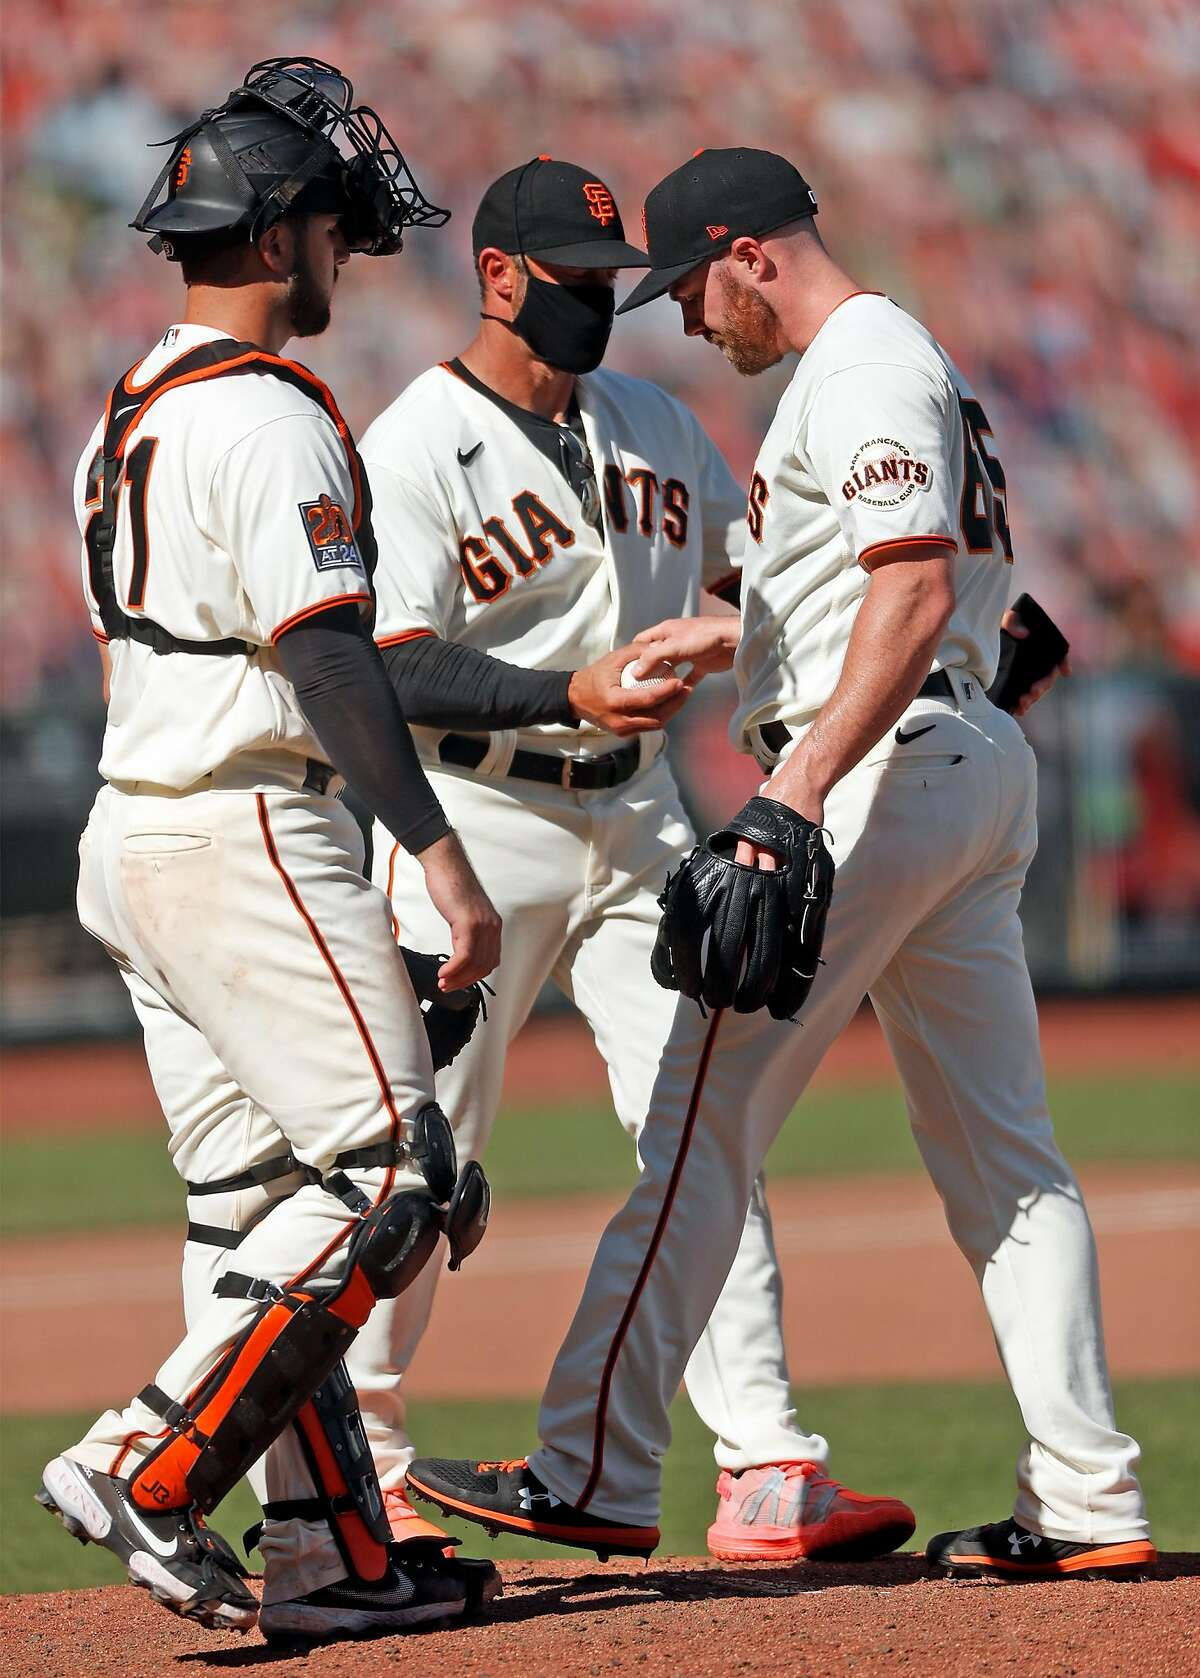 San Francisco Giants' manager Gabe Kapler removes Sam Coonrod after the reliever gave up the tying and go-ahead runs to Colorado Rockies in 7th inning during MLB game at Oracle Park in San Francisco, Calif., on Thursday, September 24, 2020.